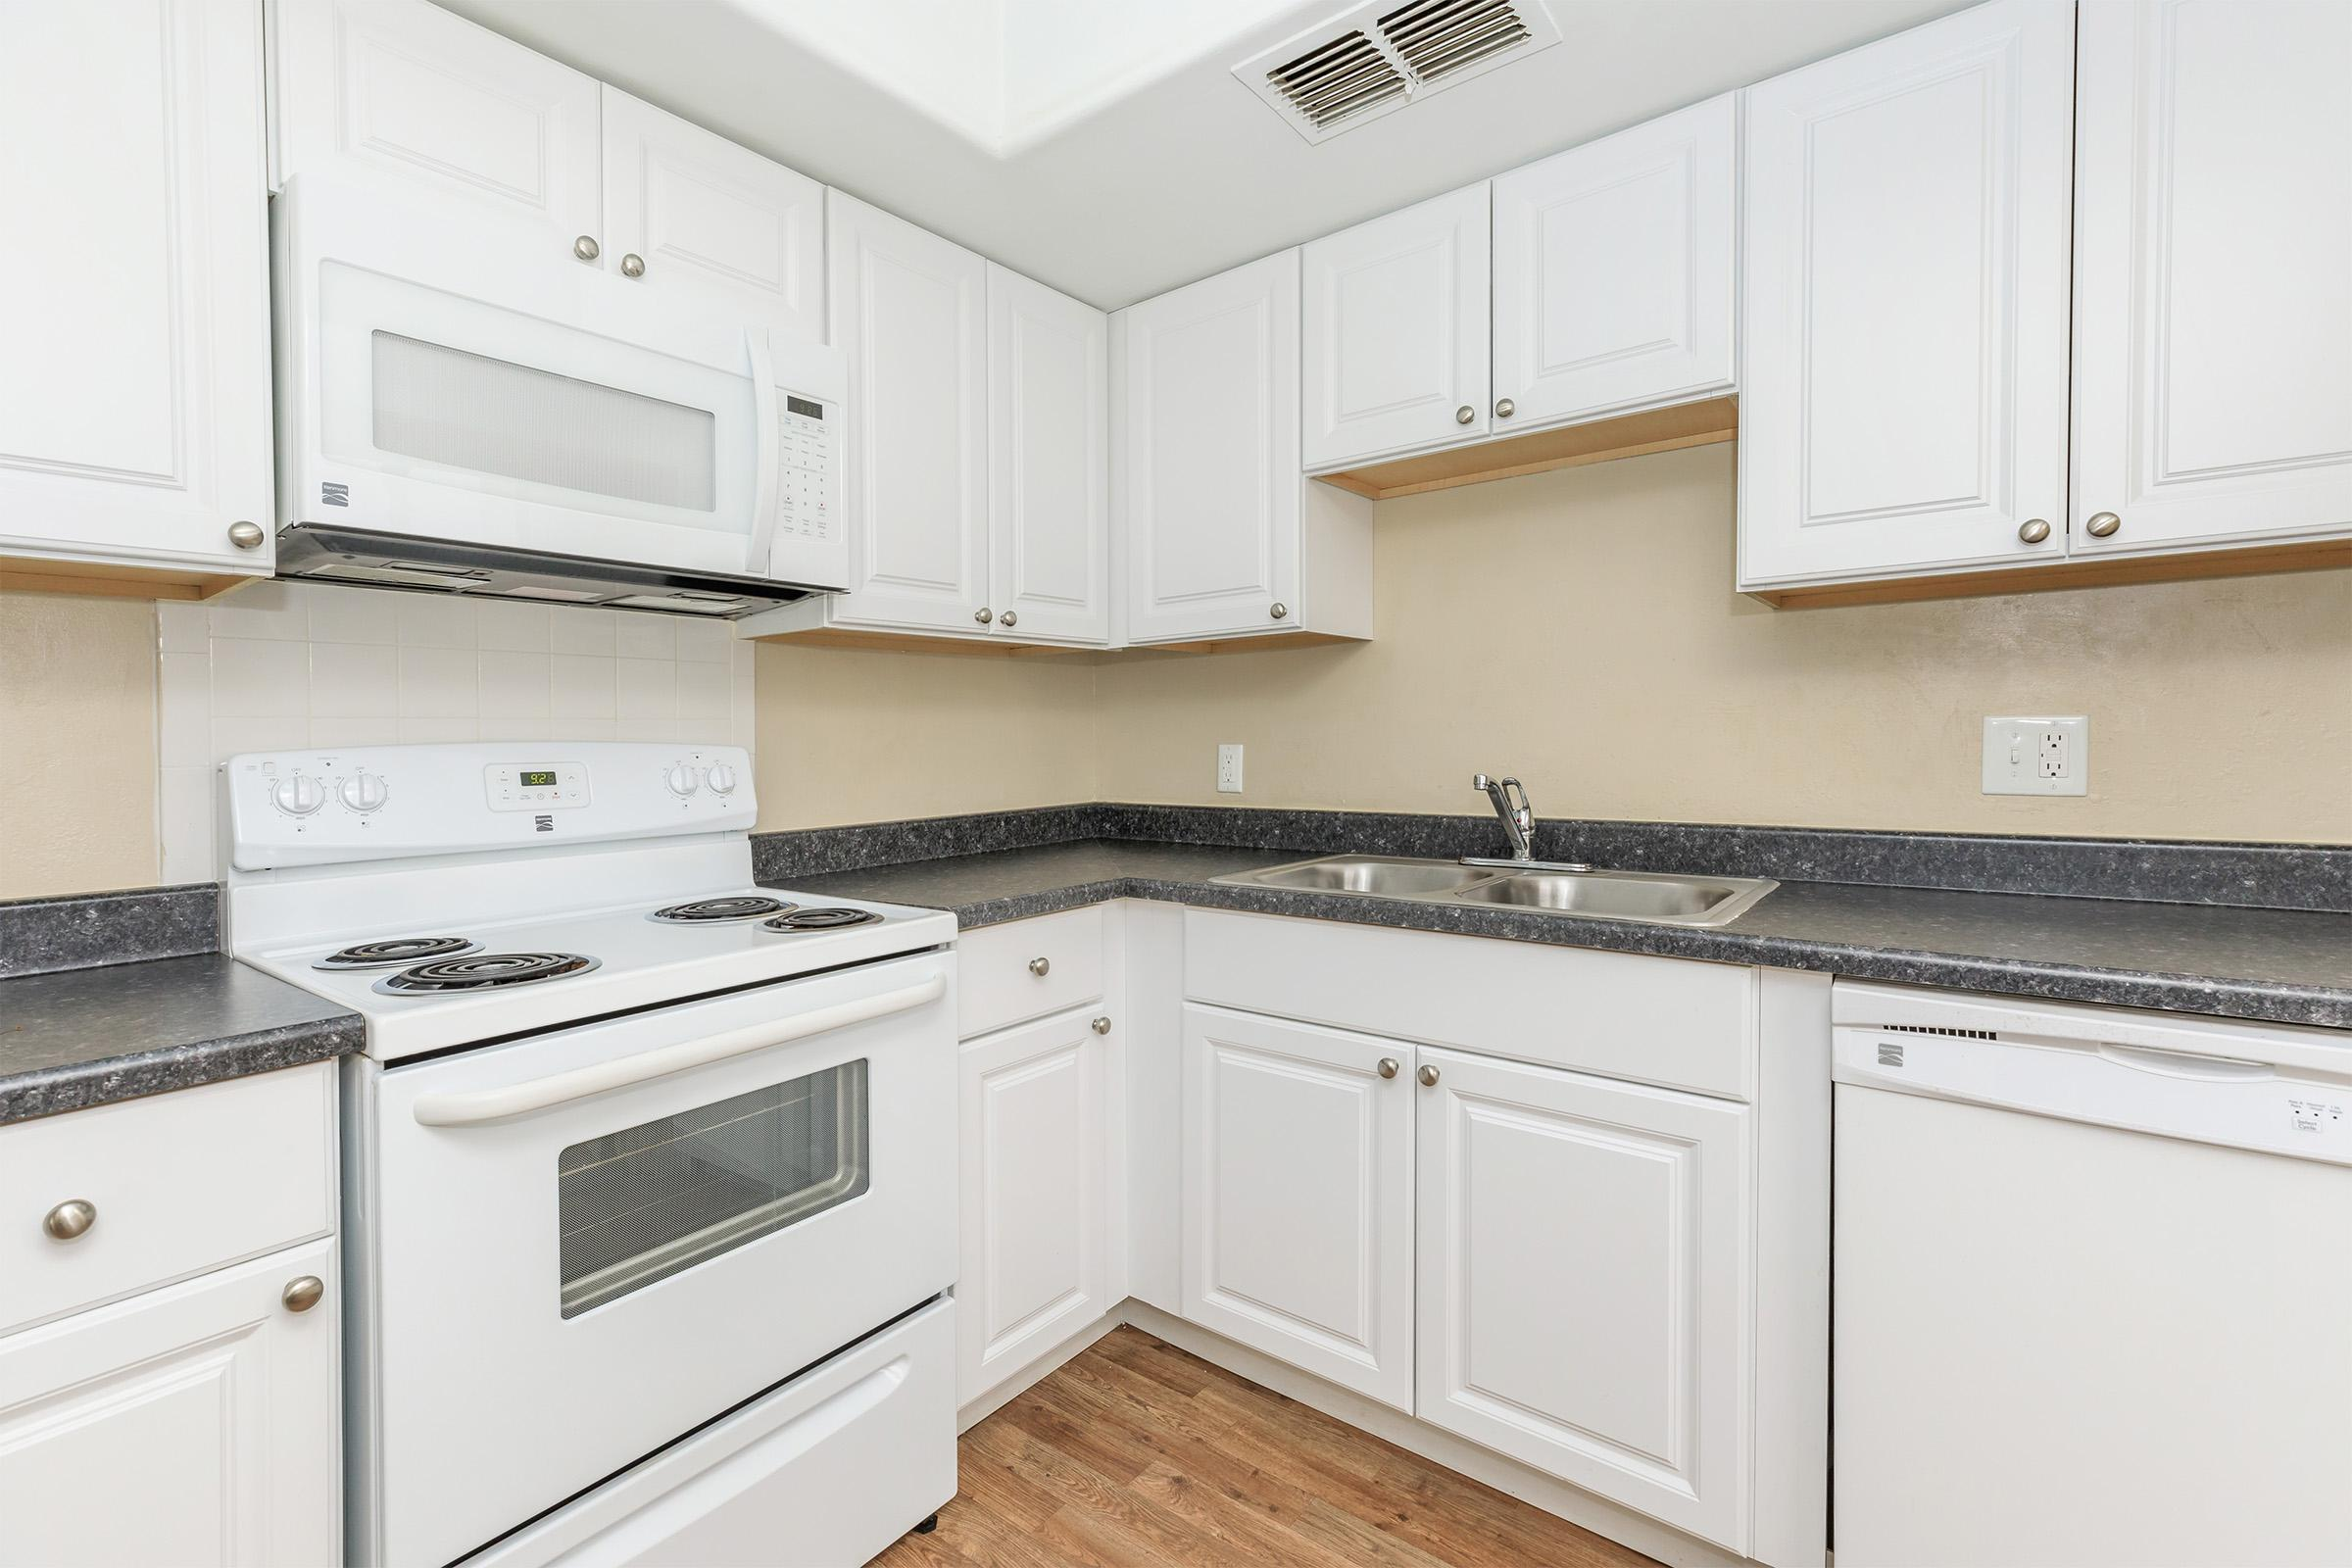 a white stove top oven sitting inside of a kitchen